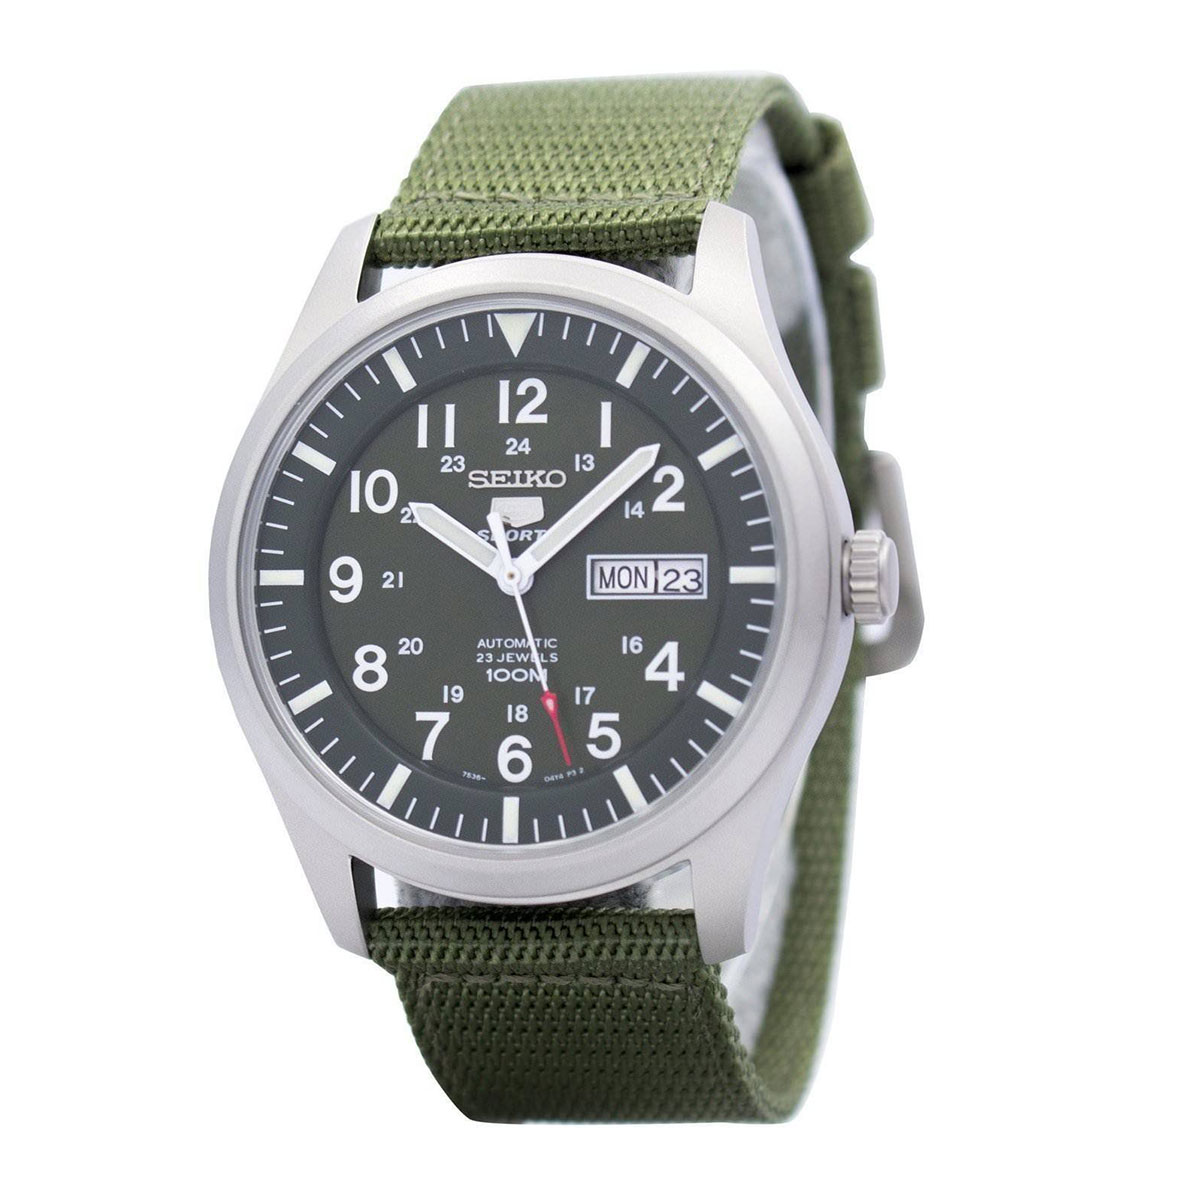 Seiko Analog Sport Mens Watch 5 SPORTS  SNZG09K1 - <span itemprop='availableAtOrFrom'>UK, United Kingdom</span> - 1. Refund Policy : Refund will only be made if there is a manufacturing fault or DOA or we made a mistake. 2. Watches that have been resized, damaged, or otherwise altered after delivery will  - UK, United Kingdom